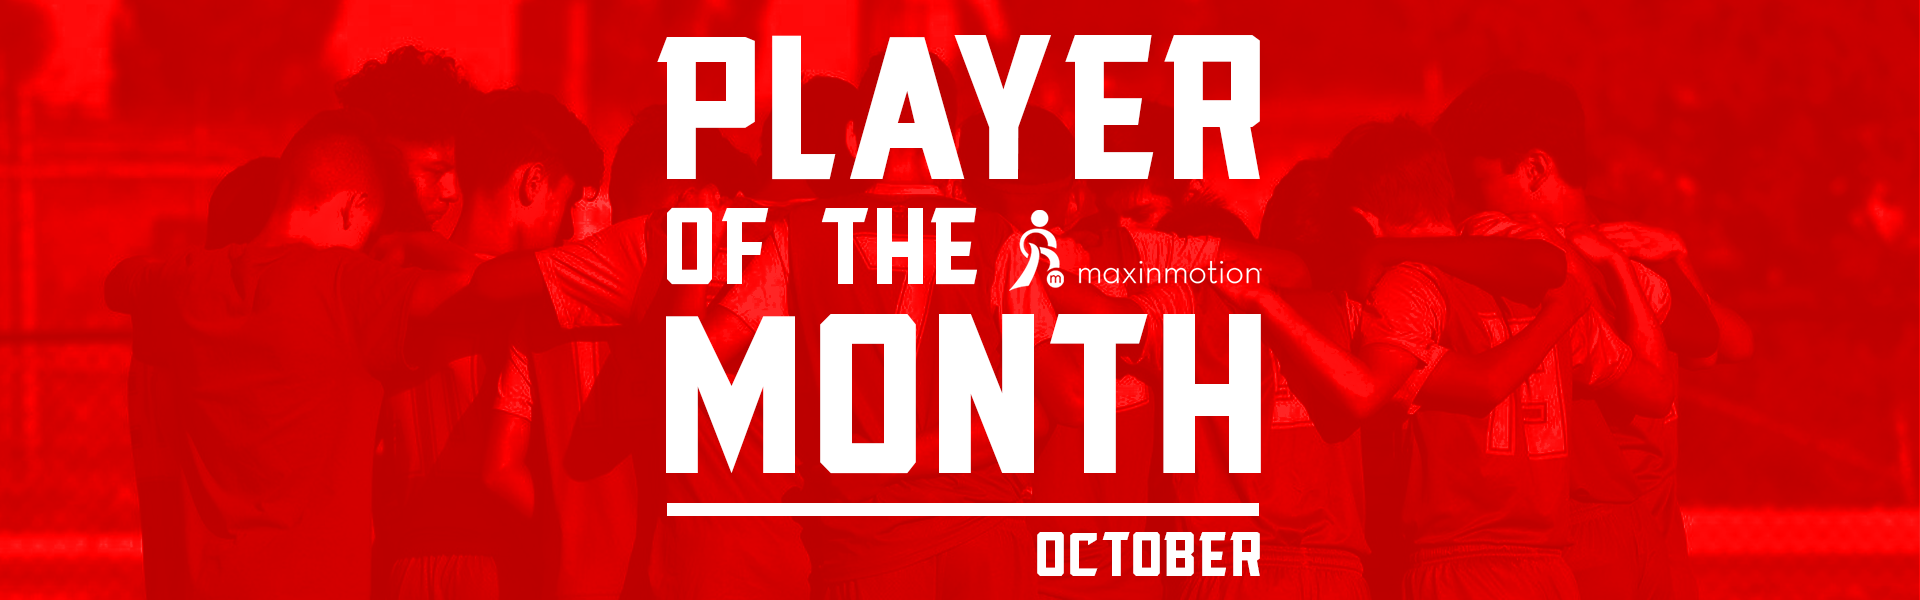 October-Player-of-the-Month